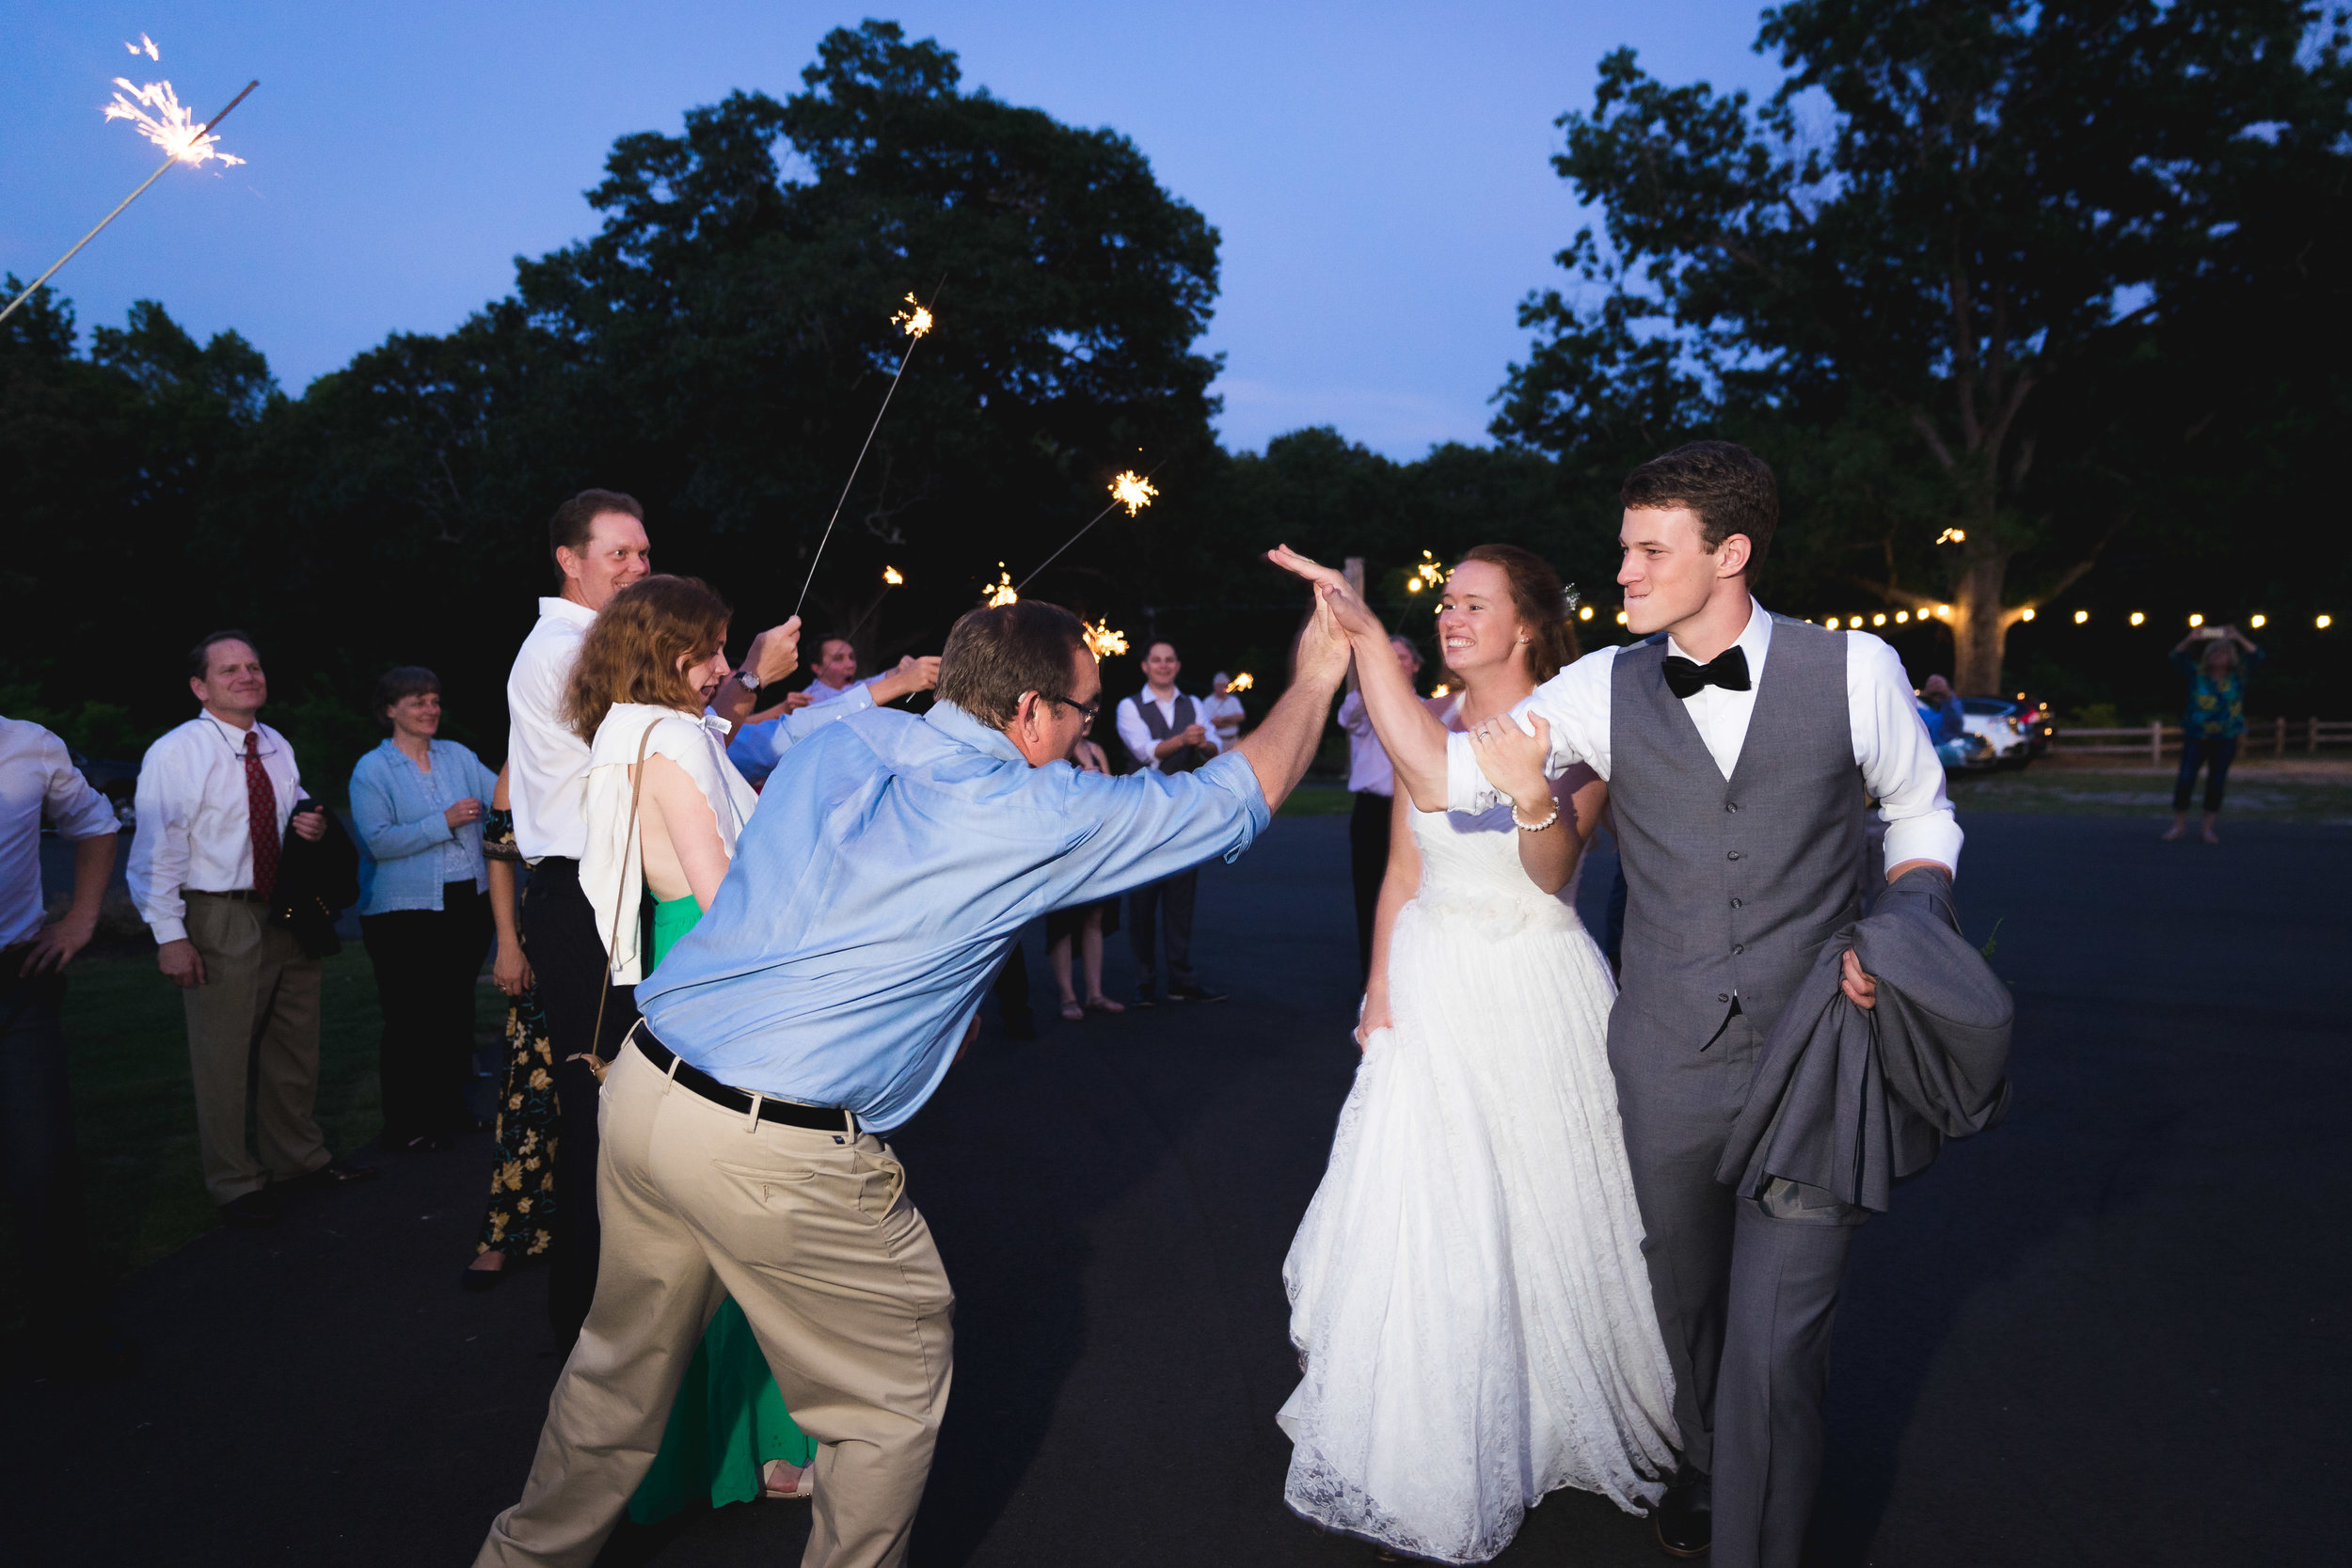 Bride and groom sparkler exit | Windy Hill Wedding and Event Barn in Simpsonville, SC